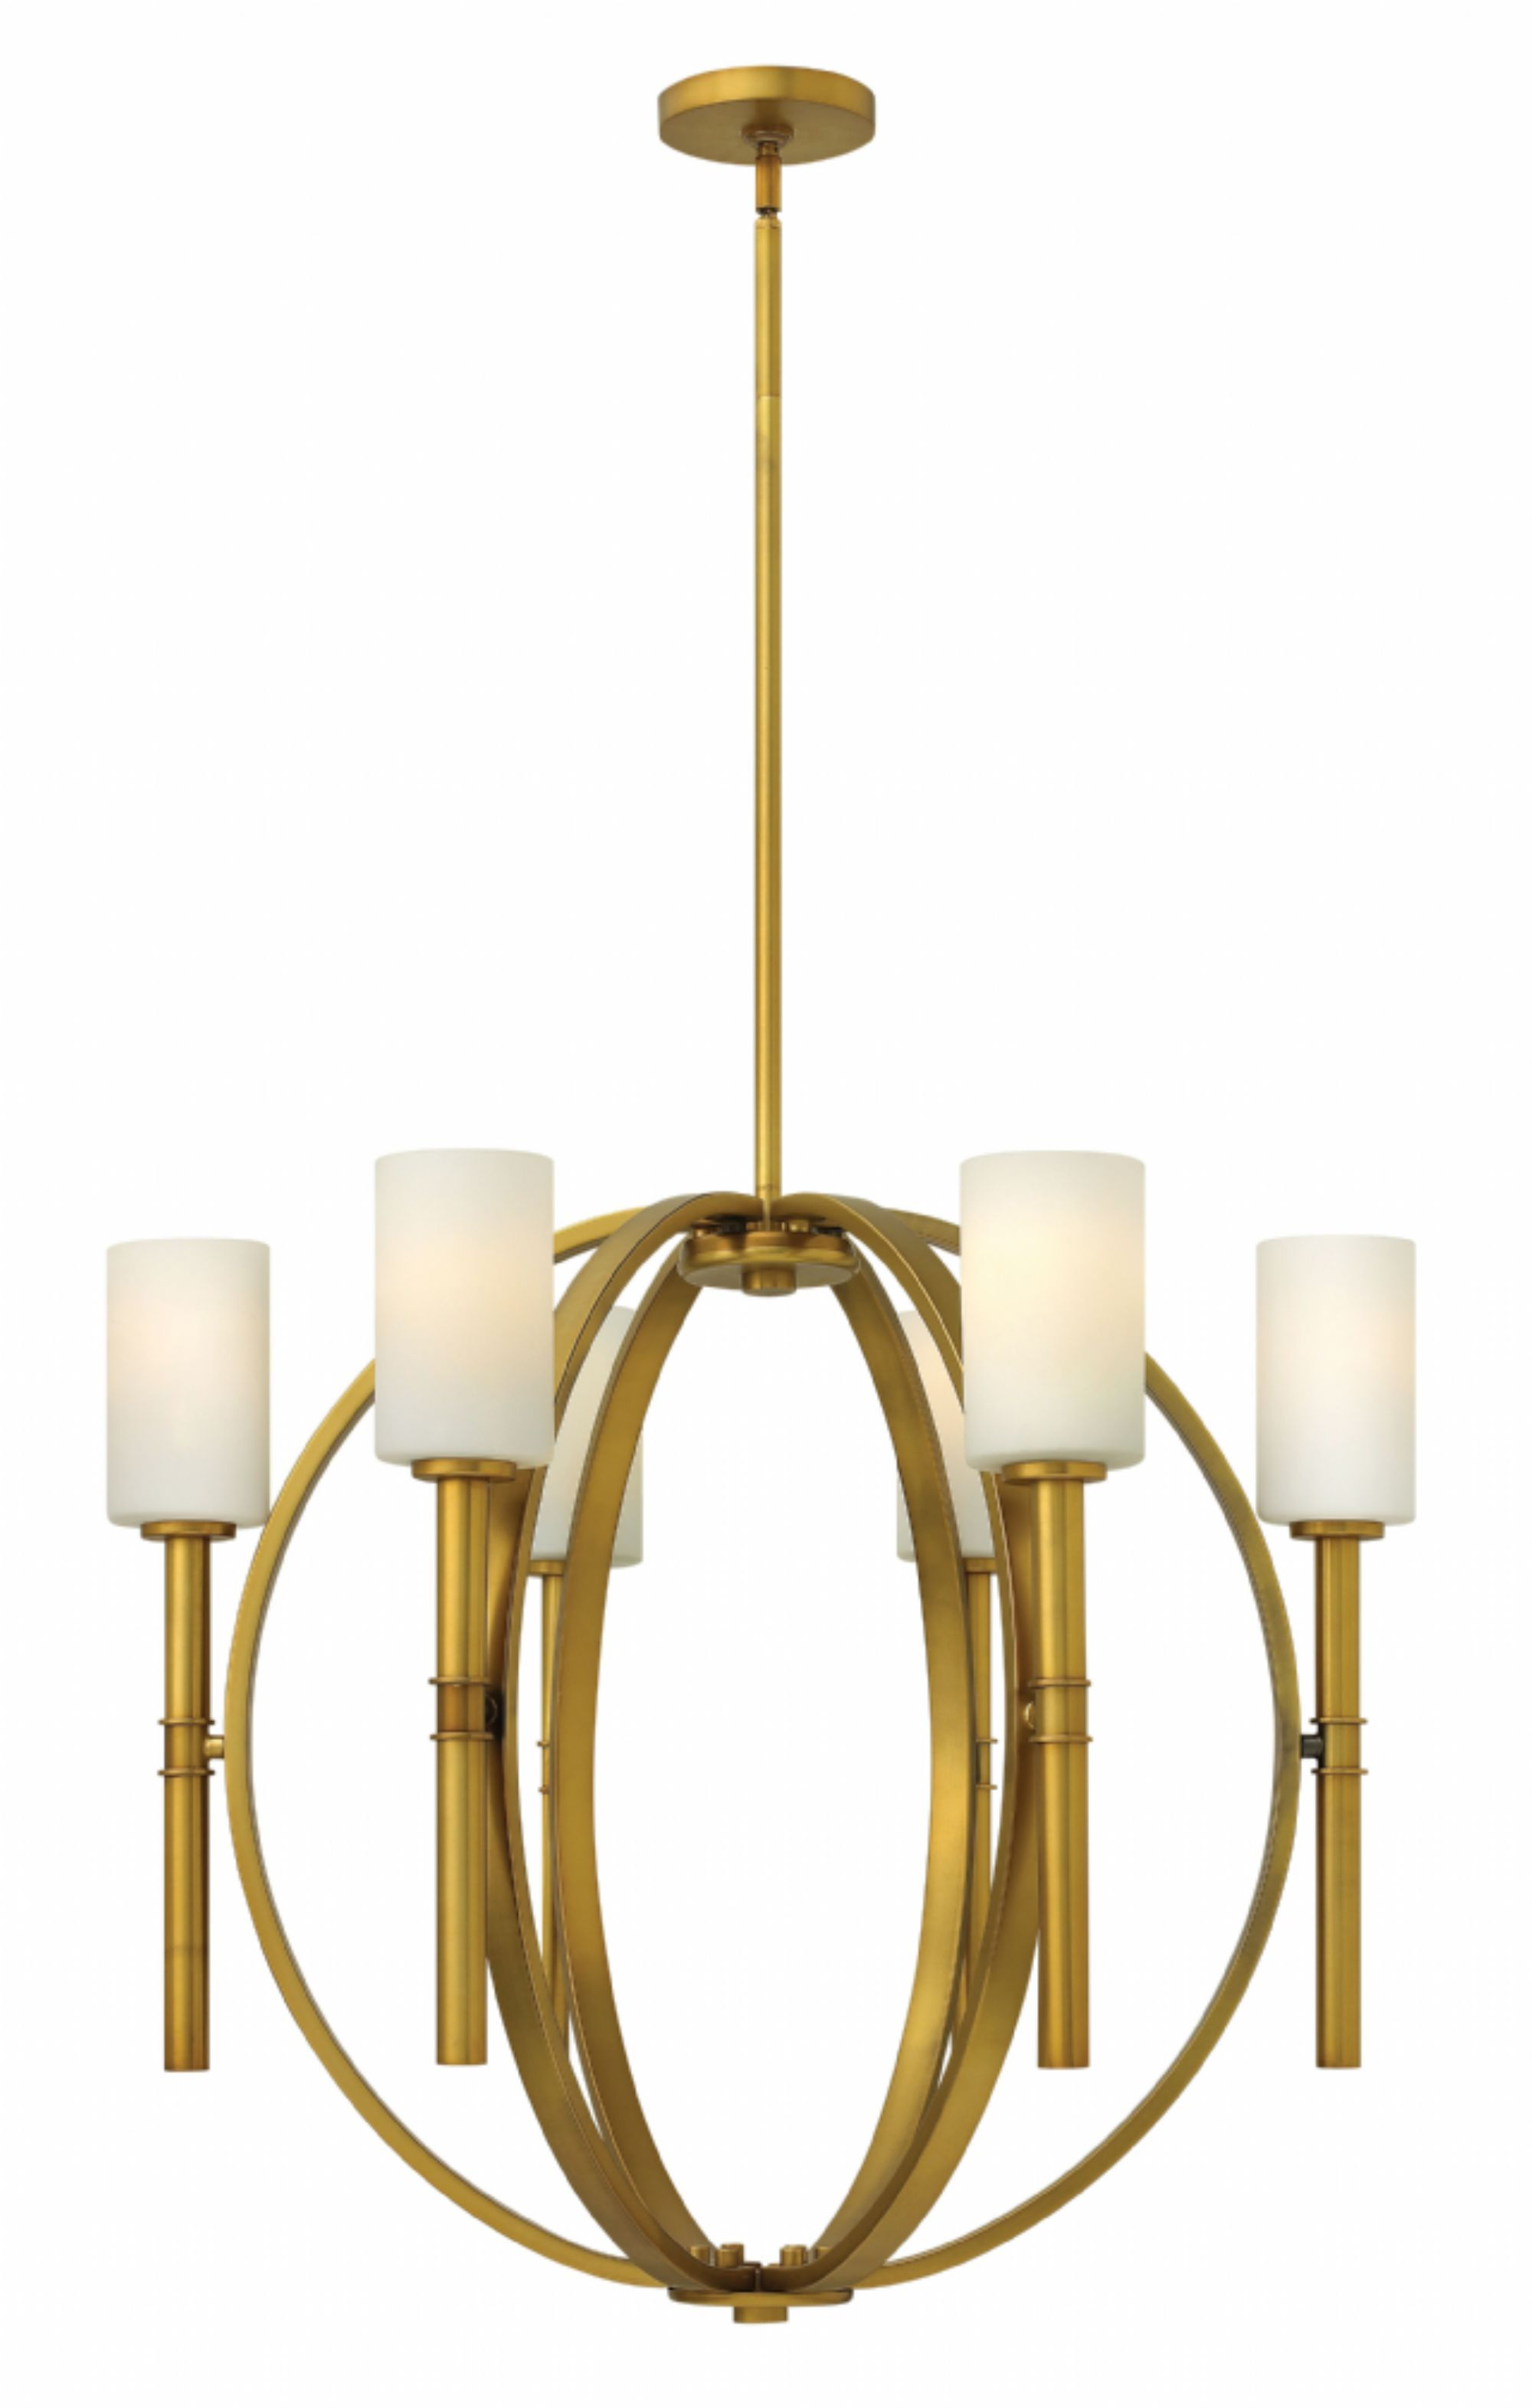 Hinkley lighting margeaux 3586vs living room chandelier margeaux 6 arm chandelier with etched opal glass shades arubaitofo Images